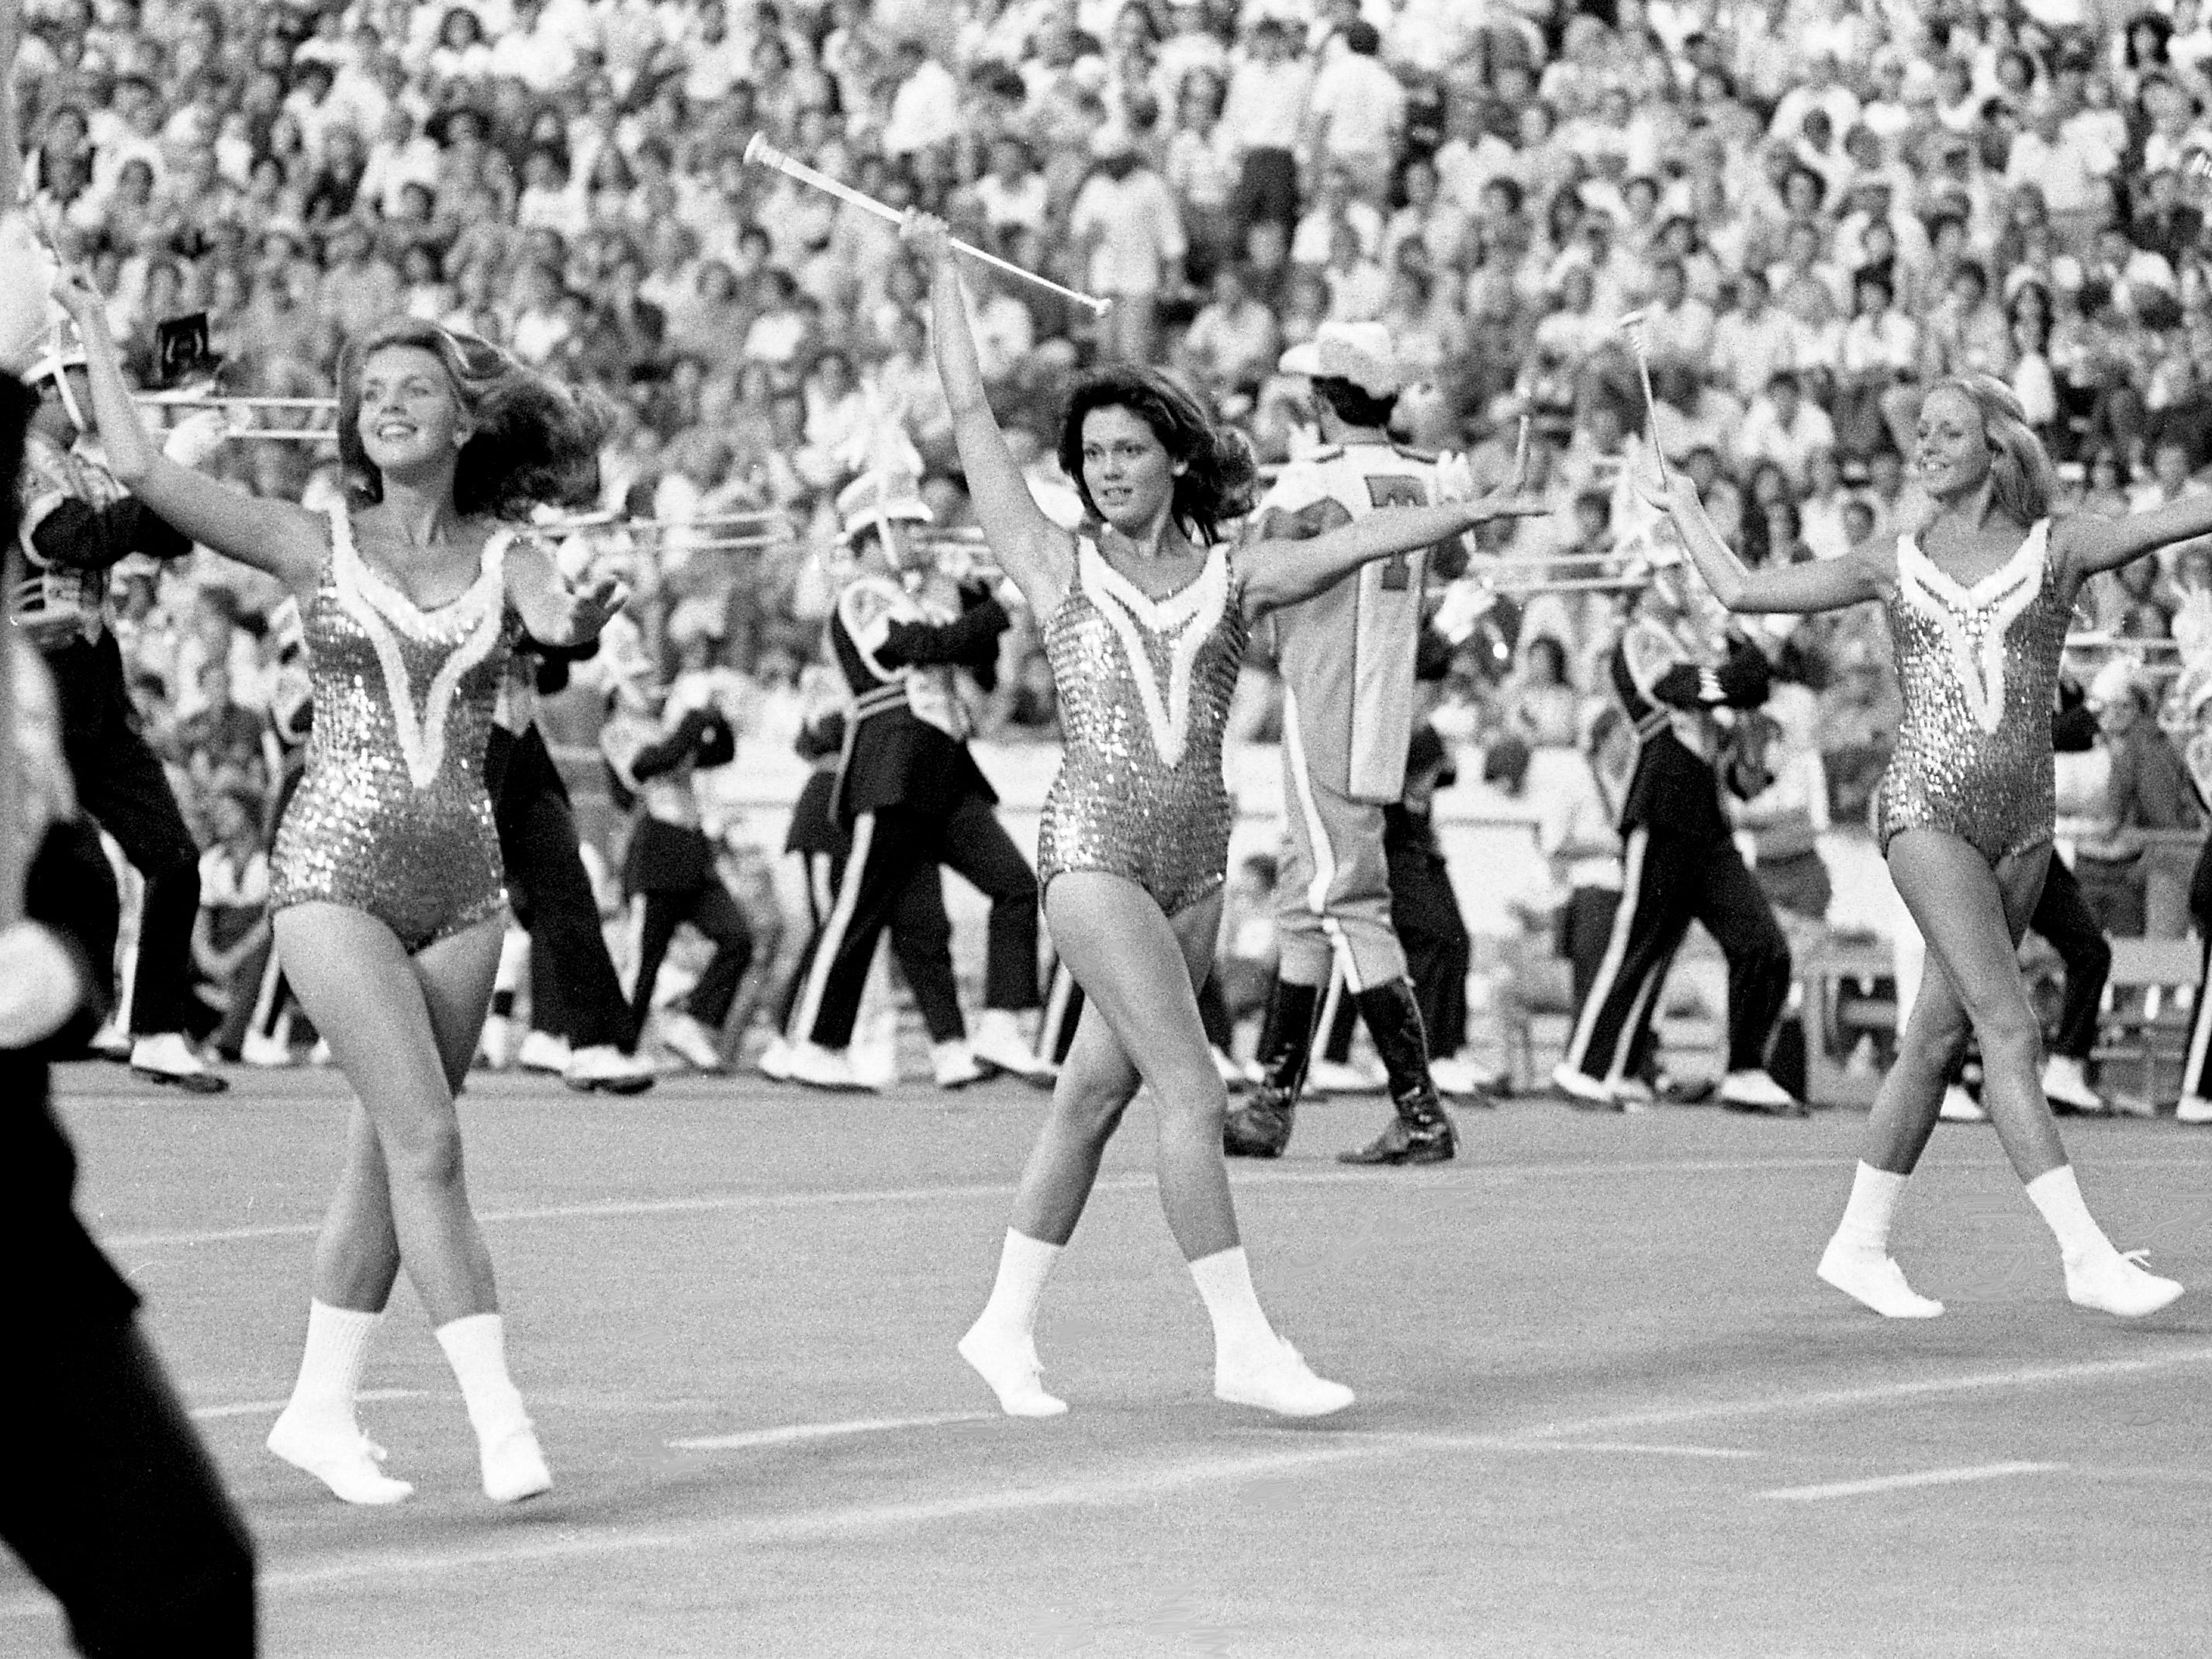 Some of Tennessee majorettes and the Pride of the Southland marching band perform during halftime of the season opener against UCLA. The Vols fall 13-0 to UCLA before an opening record crowd of 85,897 at Neyland Stadium Sept. 16, 1978.